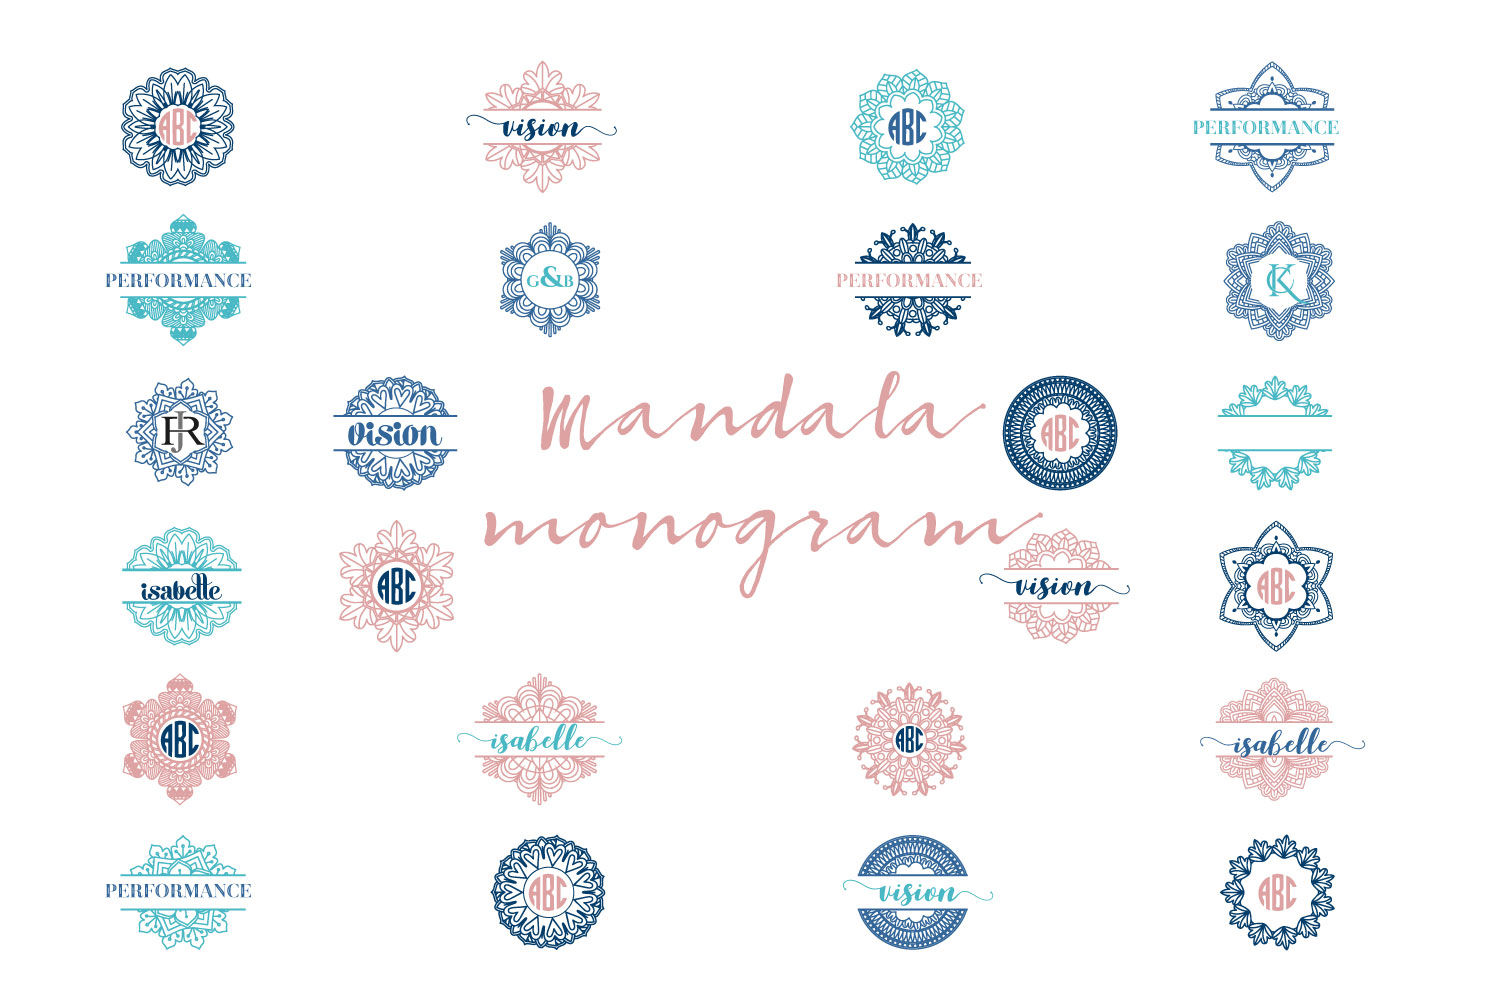 Download Free Mandala Monogram Bundle Graphic By Sintegra Creative Fabrica for Cricut Explore, Silhouette and other cutting machines.